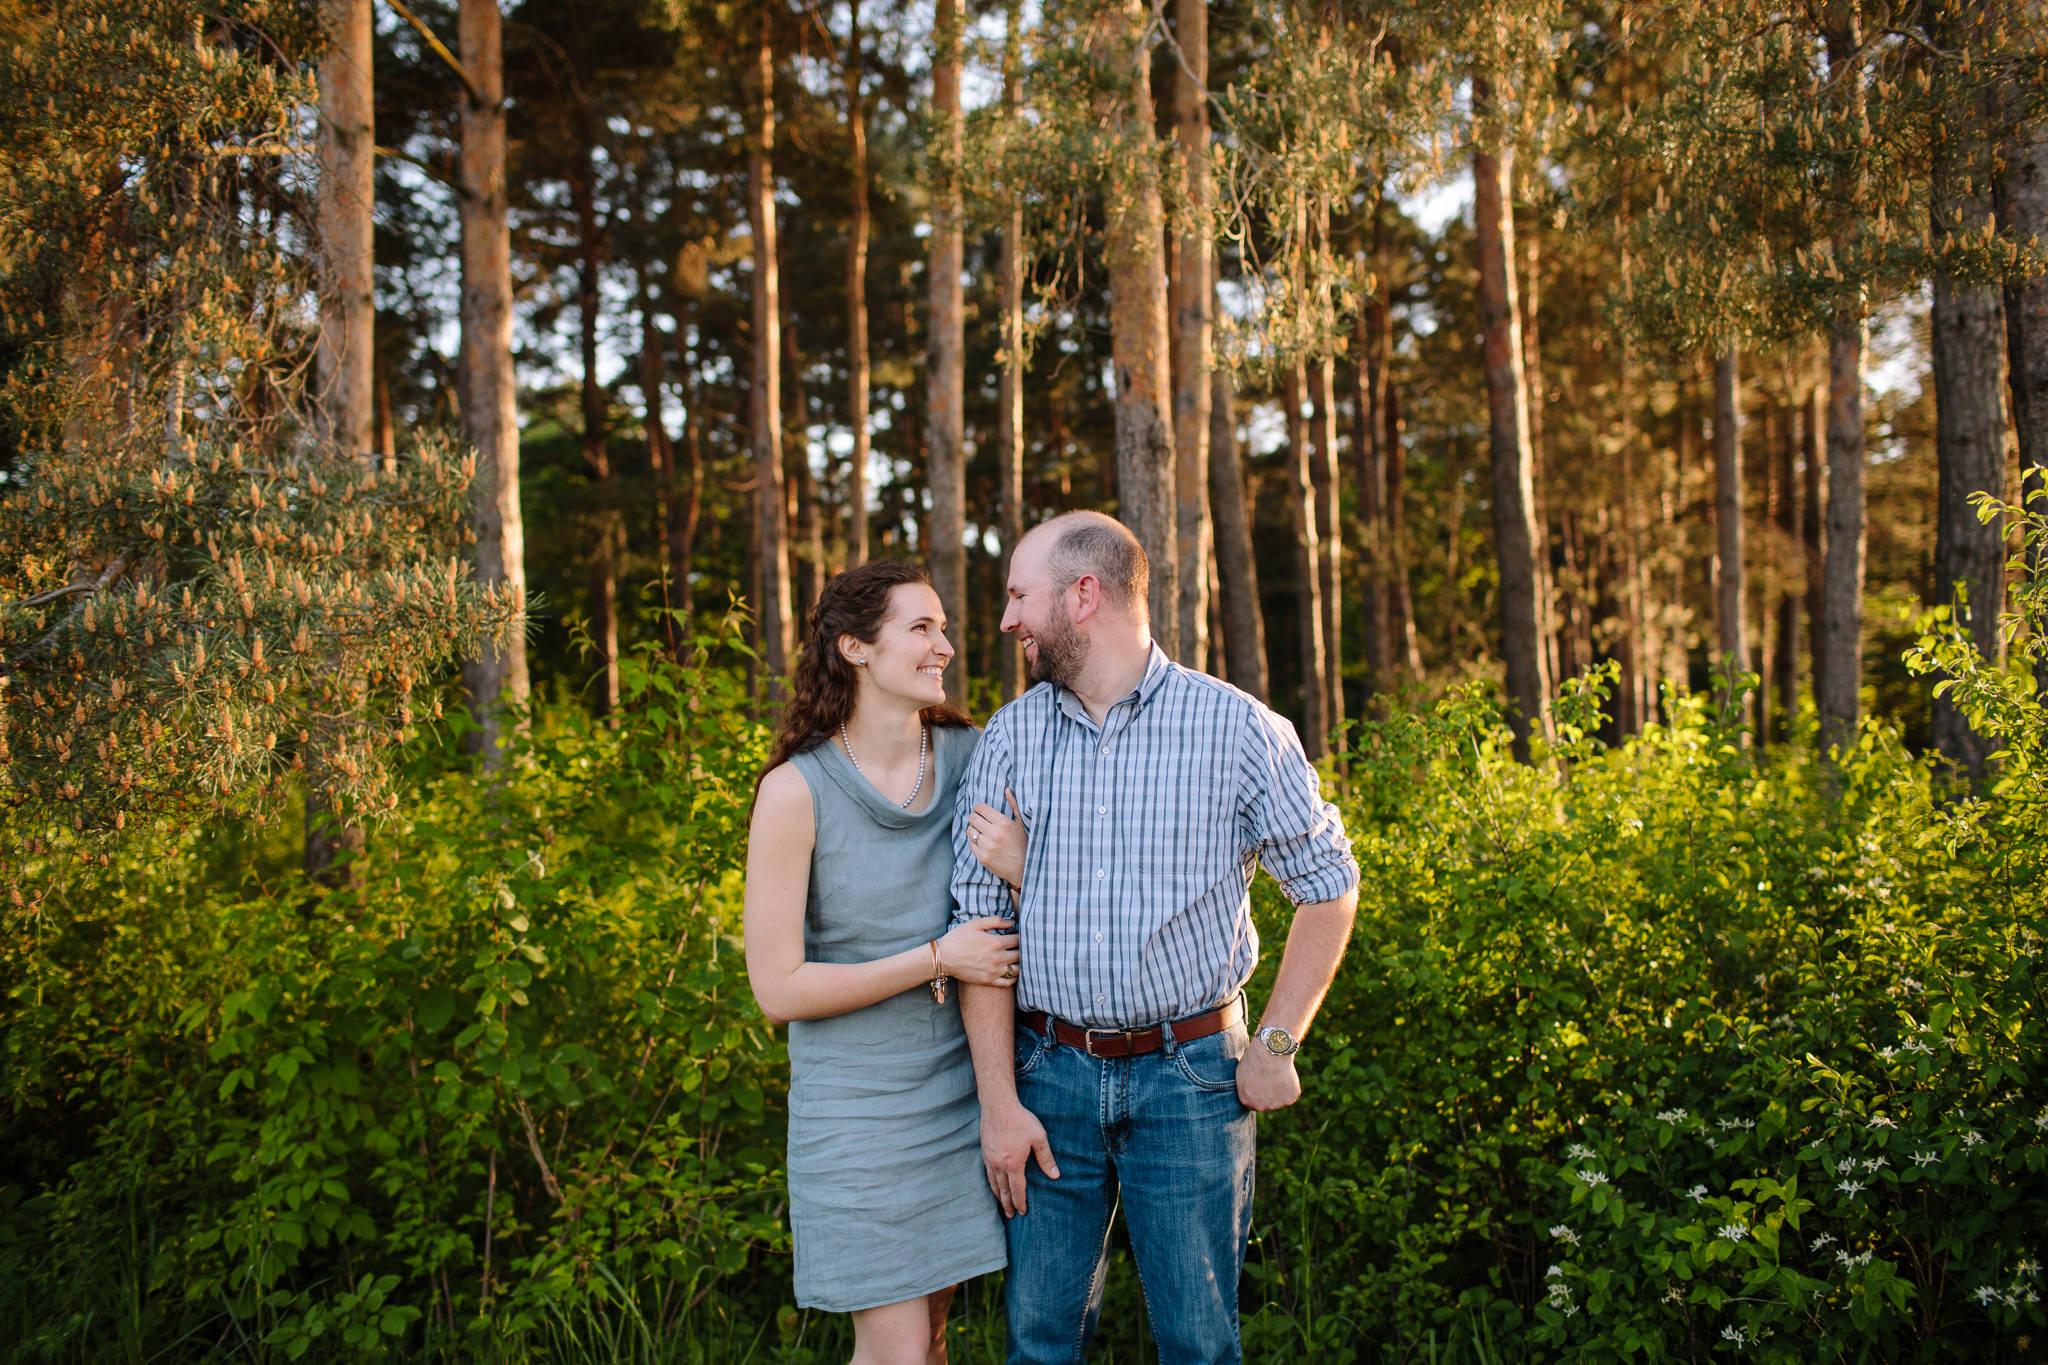 couple embracing infront of trees for engagement photo